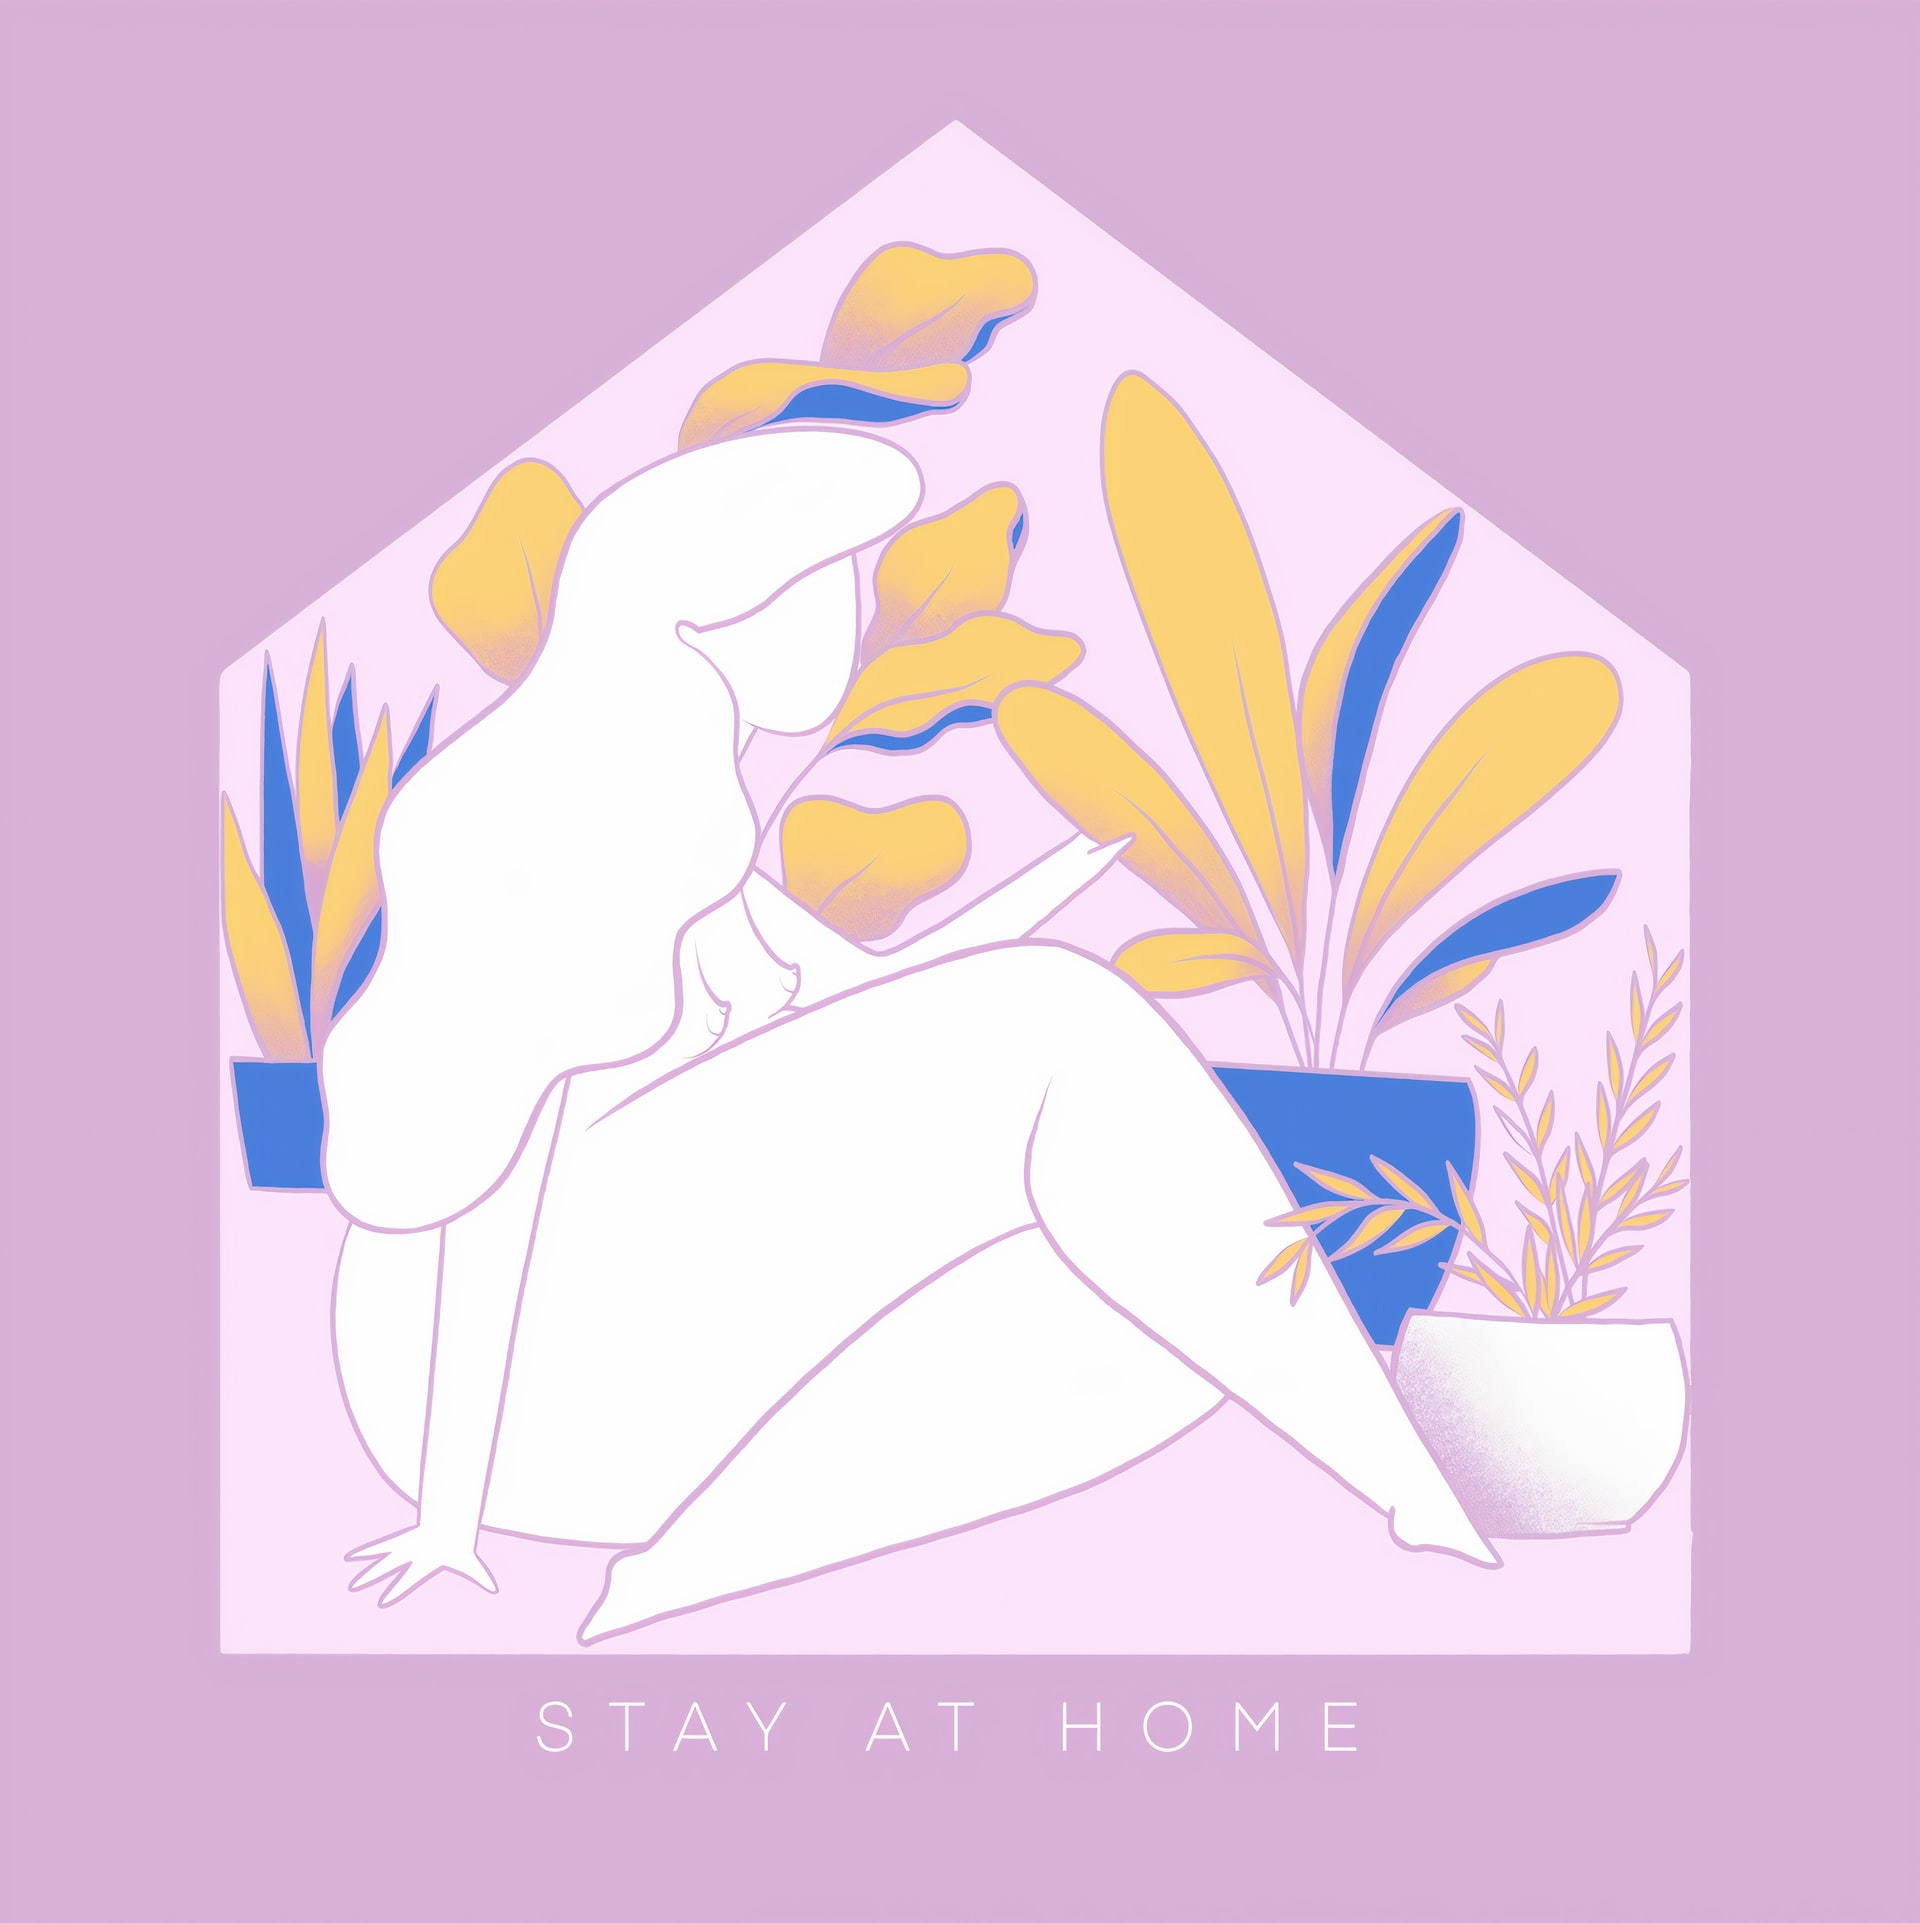 Covid-19: Stay Home